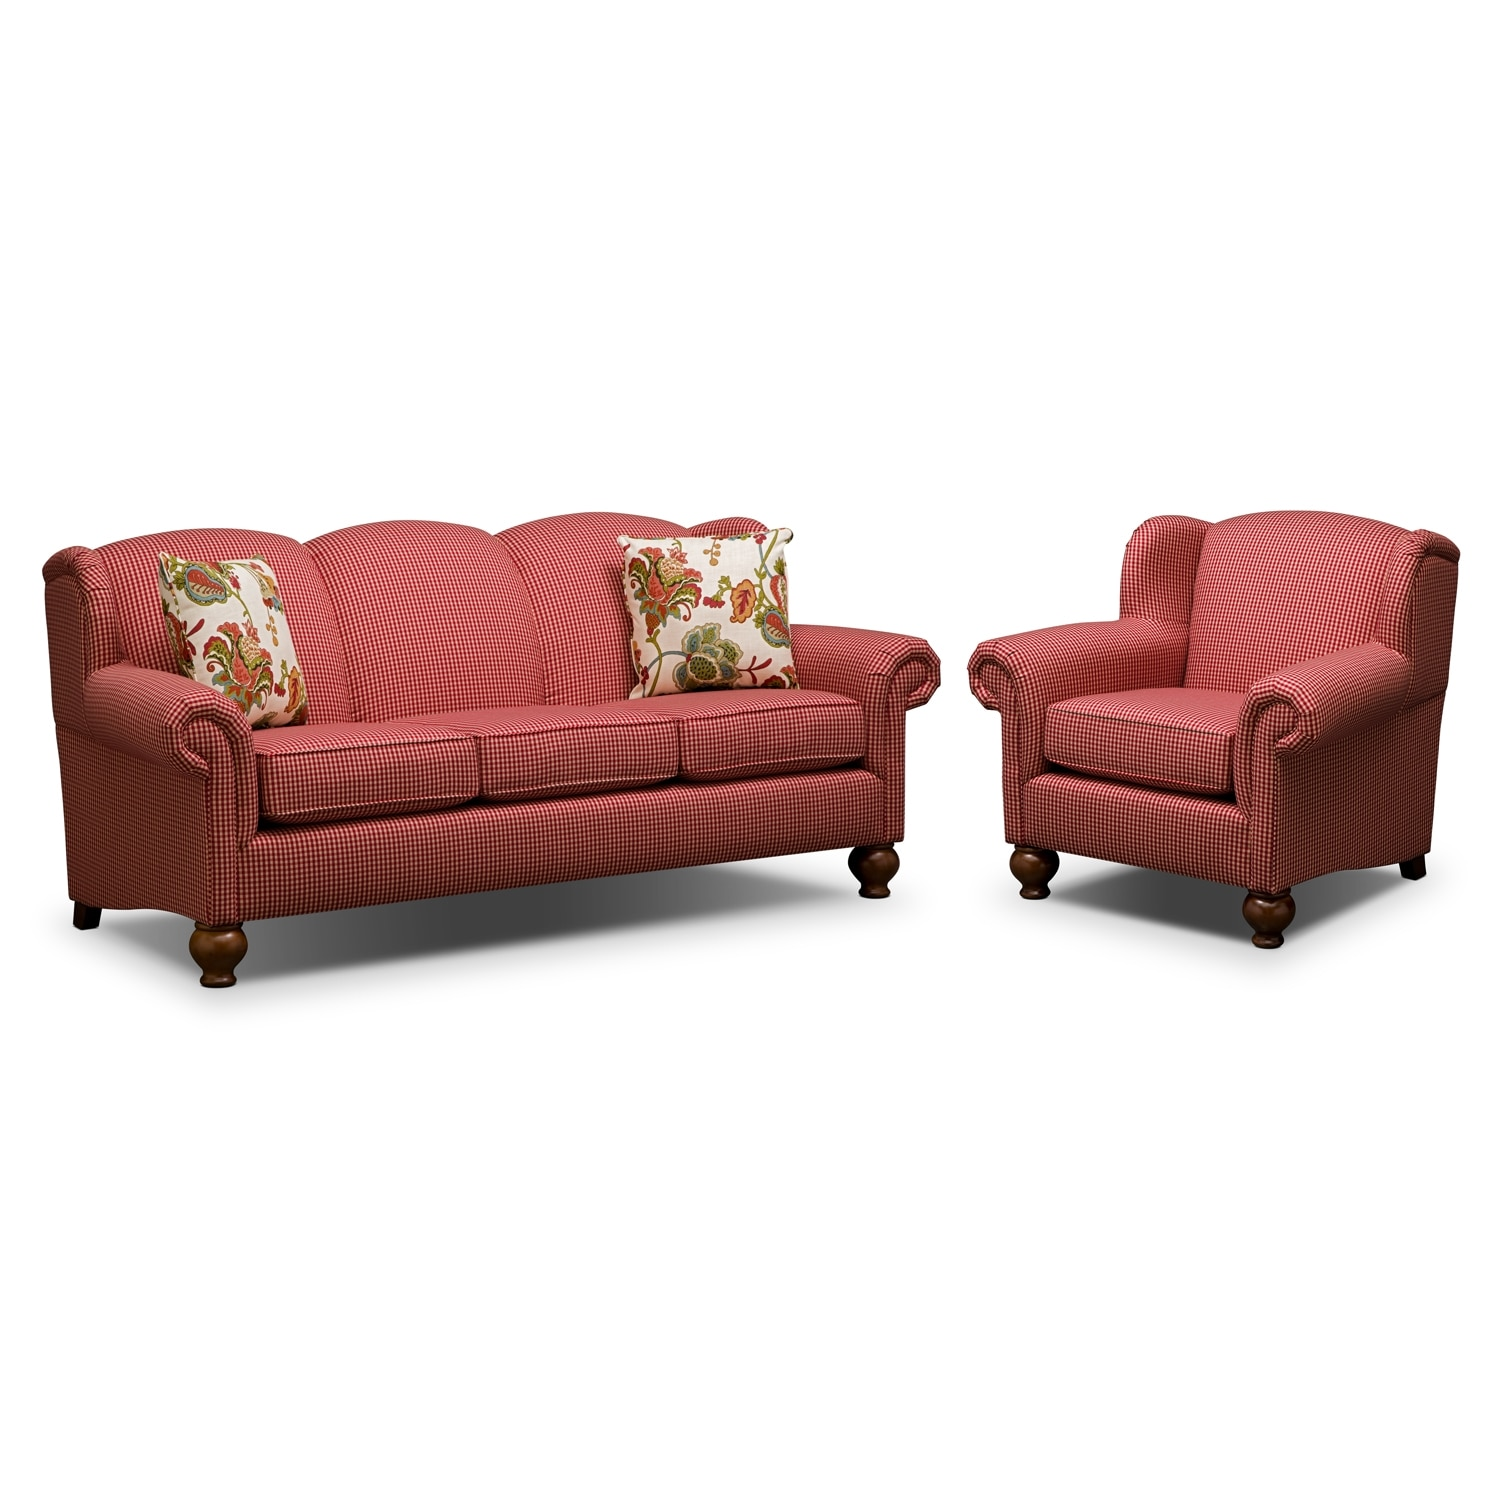 Living Room Furniture - Charlotte 2 Pc. Living Room w/ Chair